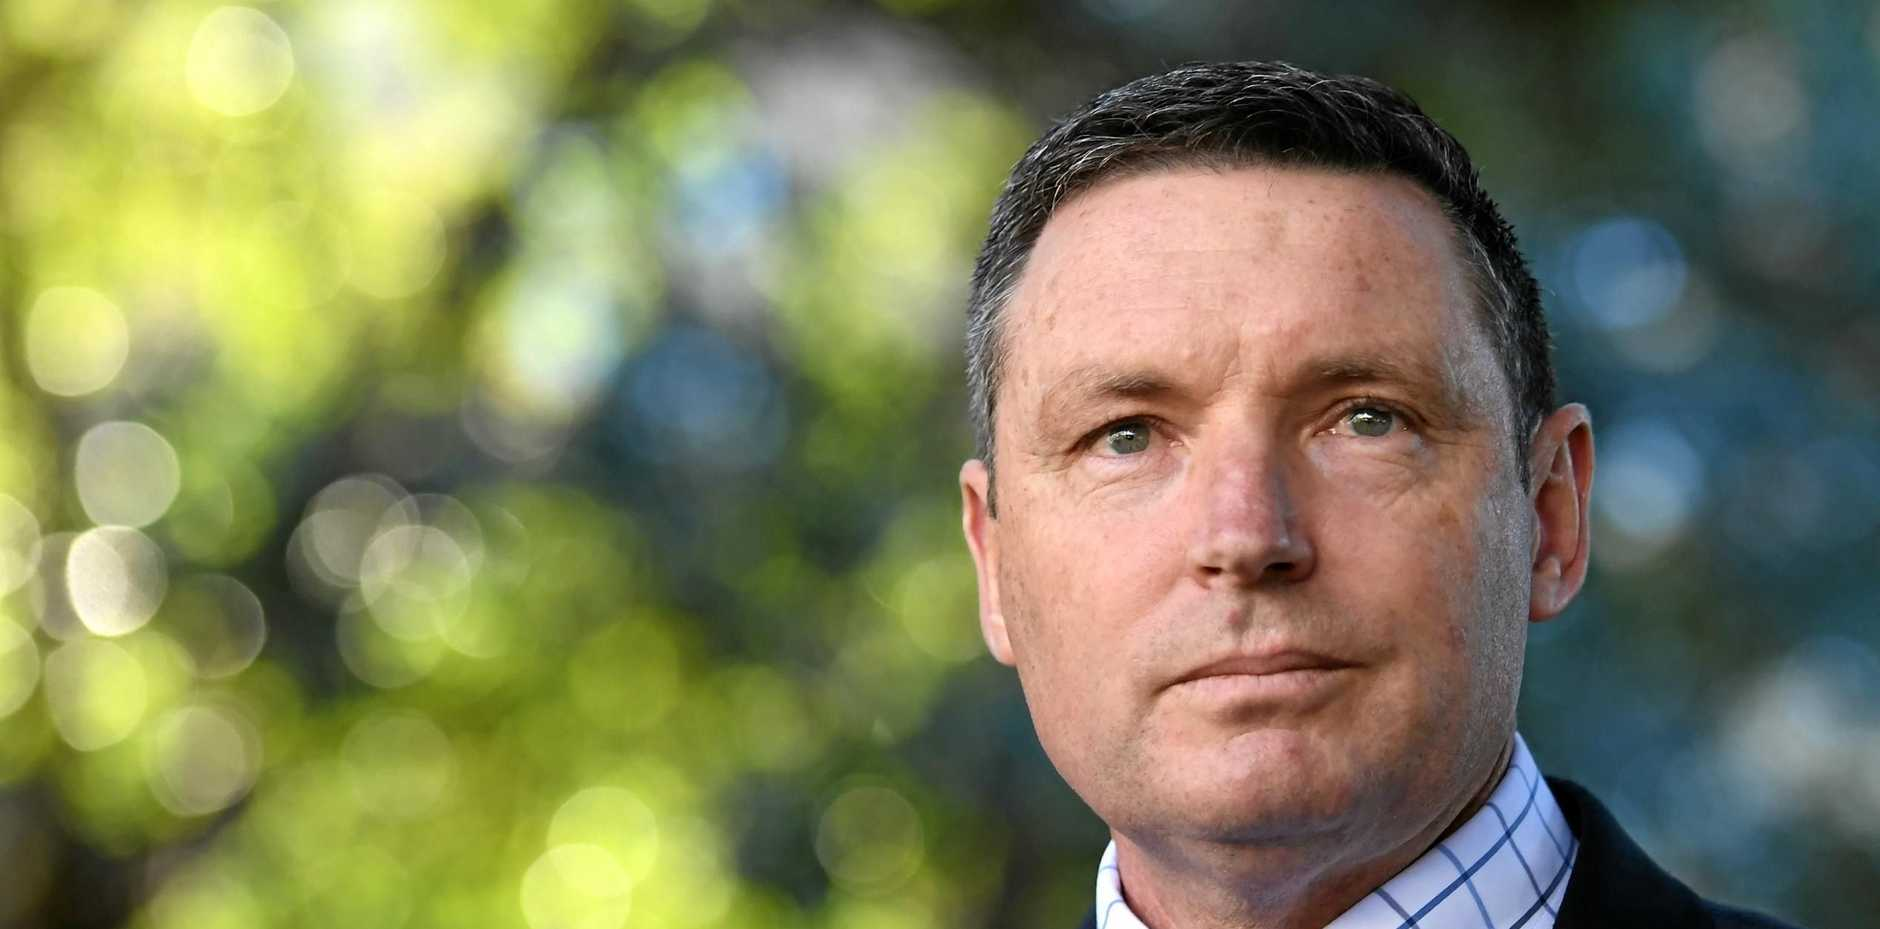 Coalition for Marriage spokesman Lyle Shelton speaks at a press conference in Hyde Park, Sydney, Thursday, September 7, 2017. The High Court has ruled that the same-sex marriage postal vote is lawful and can proceed as planned. (AAP Image/Paul Miller) NO ARCHIVING